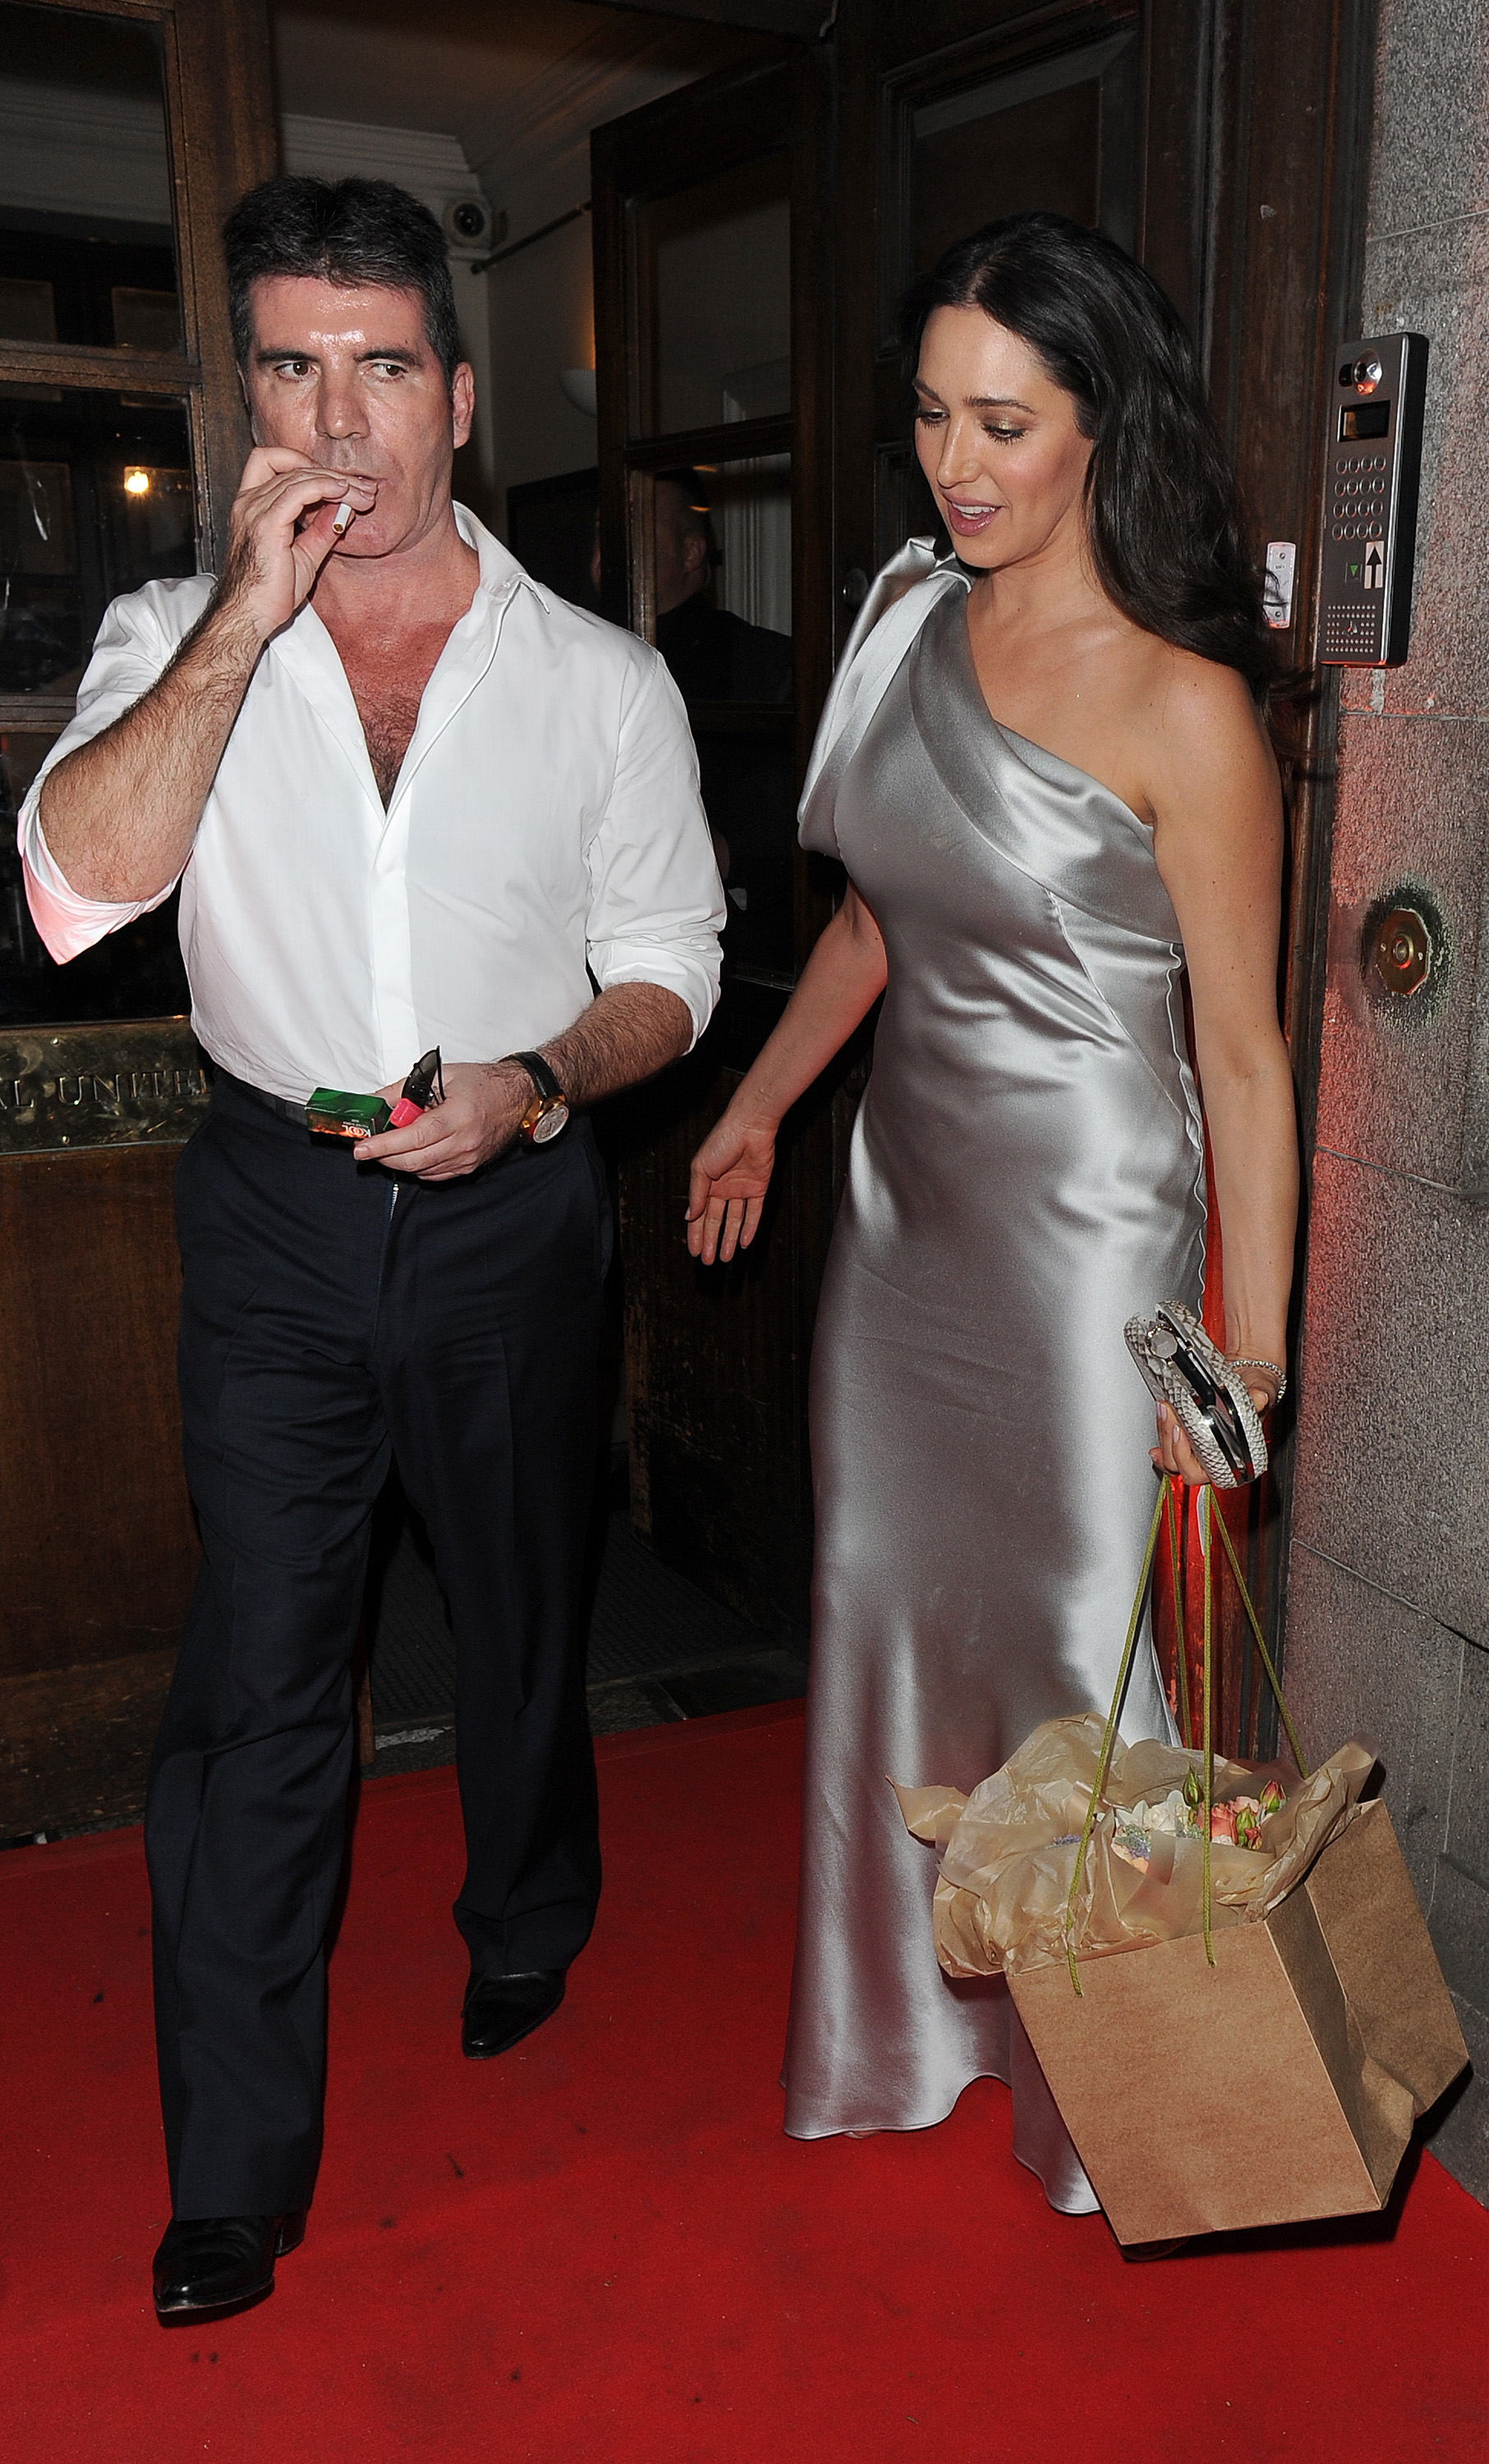 Simon Cowell and wife Lauren Silverman join Amanda Holden at a private function in London                                    Featuring: Simon Cowell, Lauren Silverman                  Where: London, United Kingdom                  When: 03 Jun 2015                  Credit: Will Alexander/WENN.com